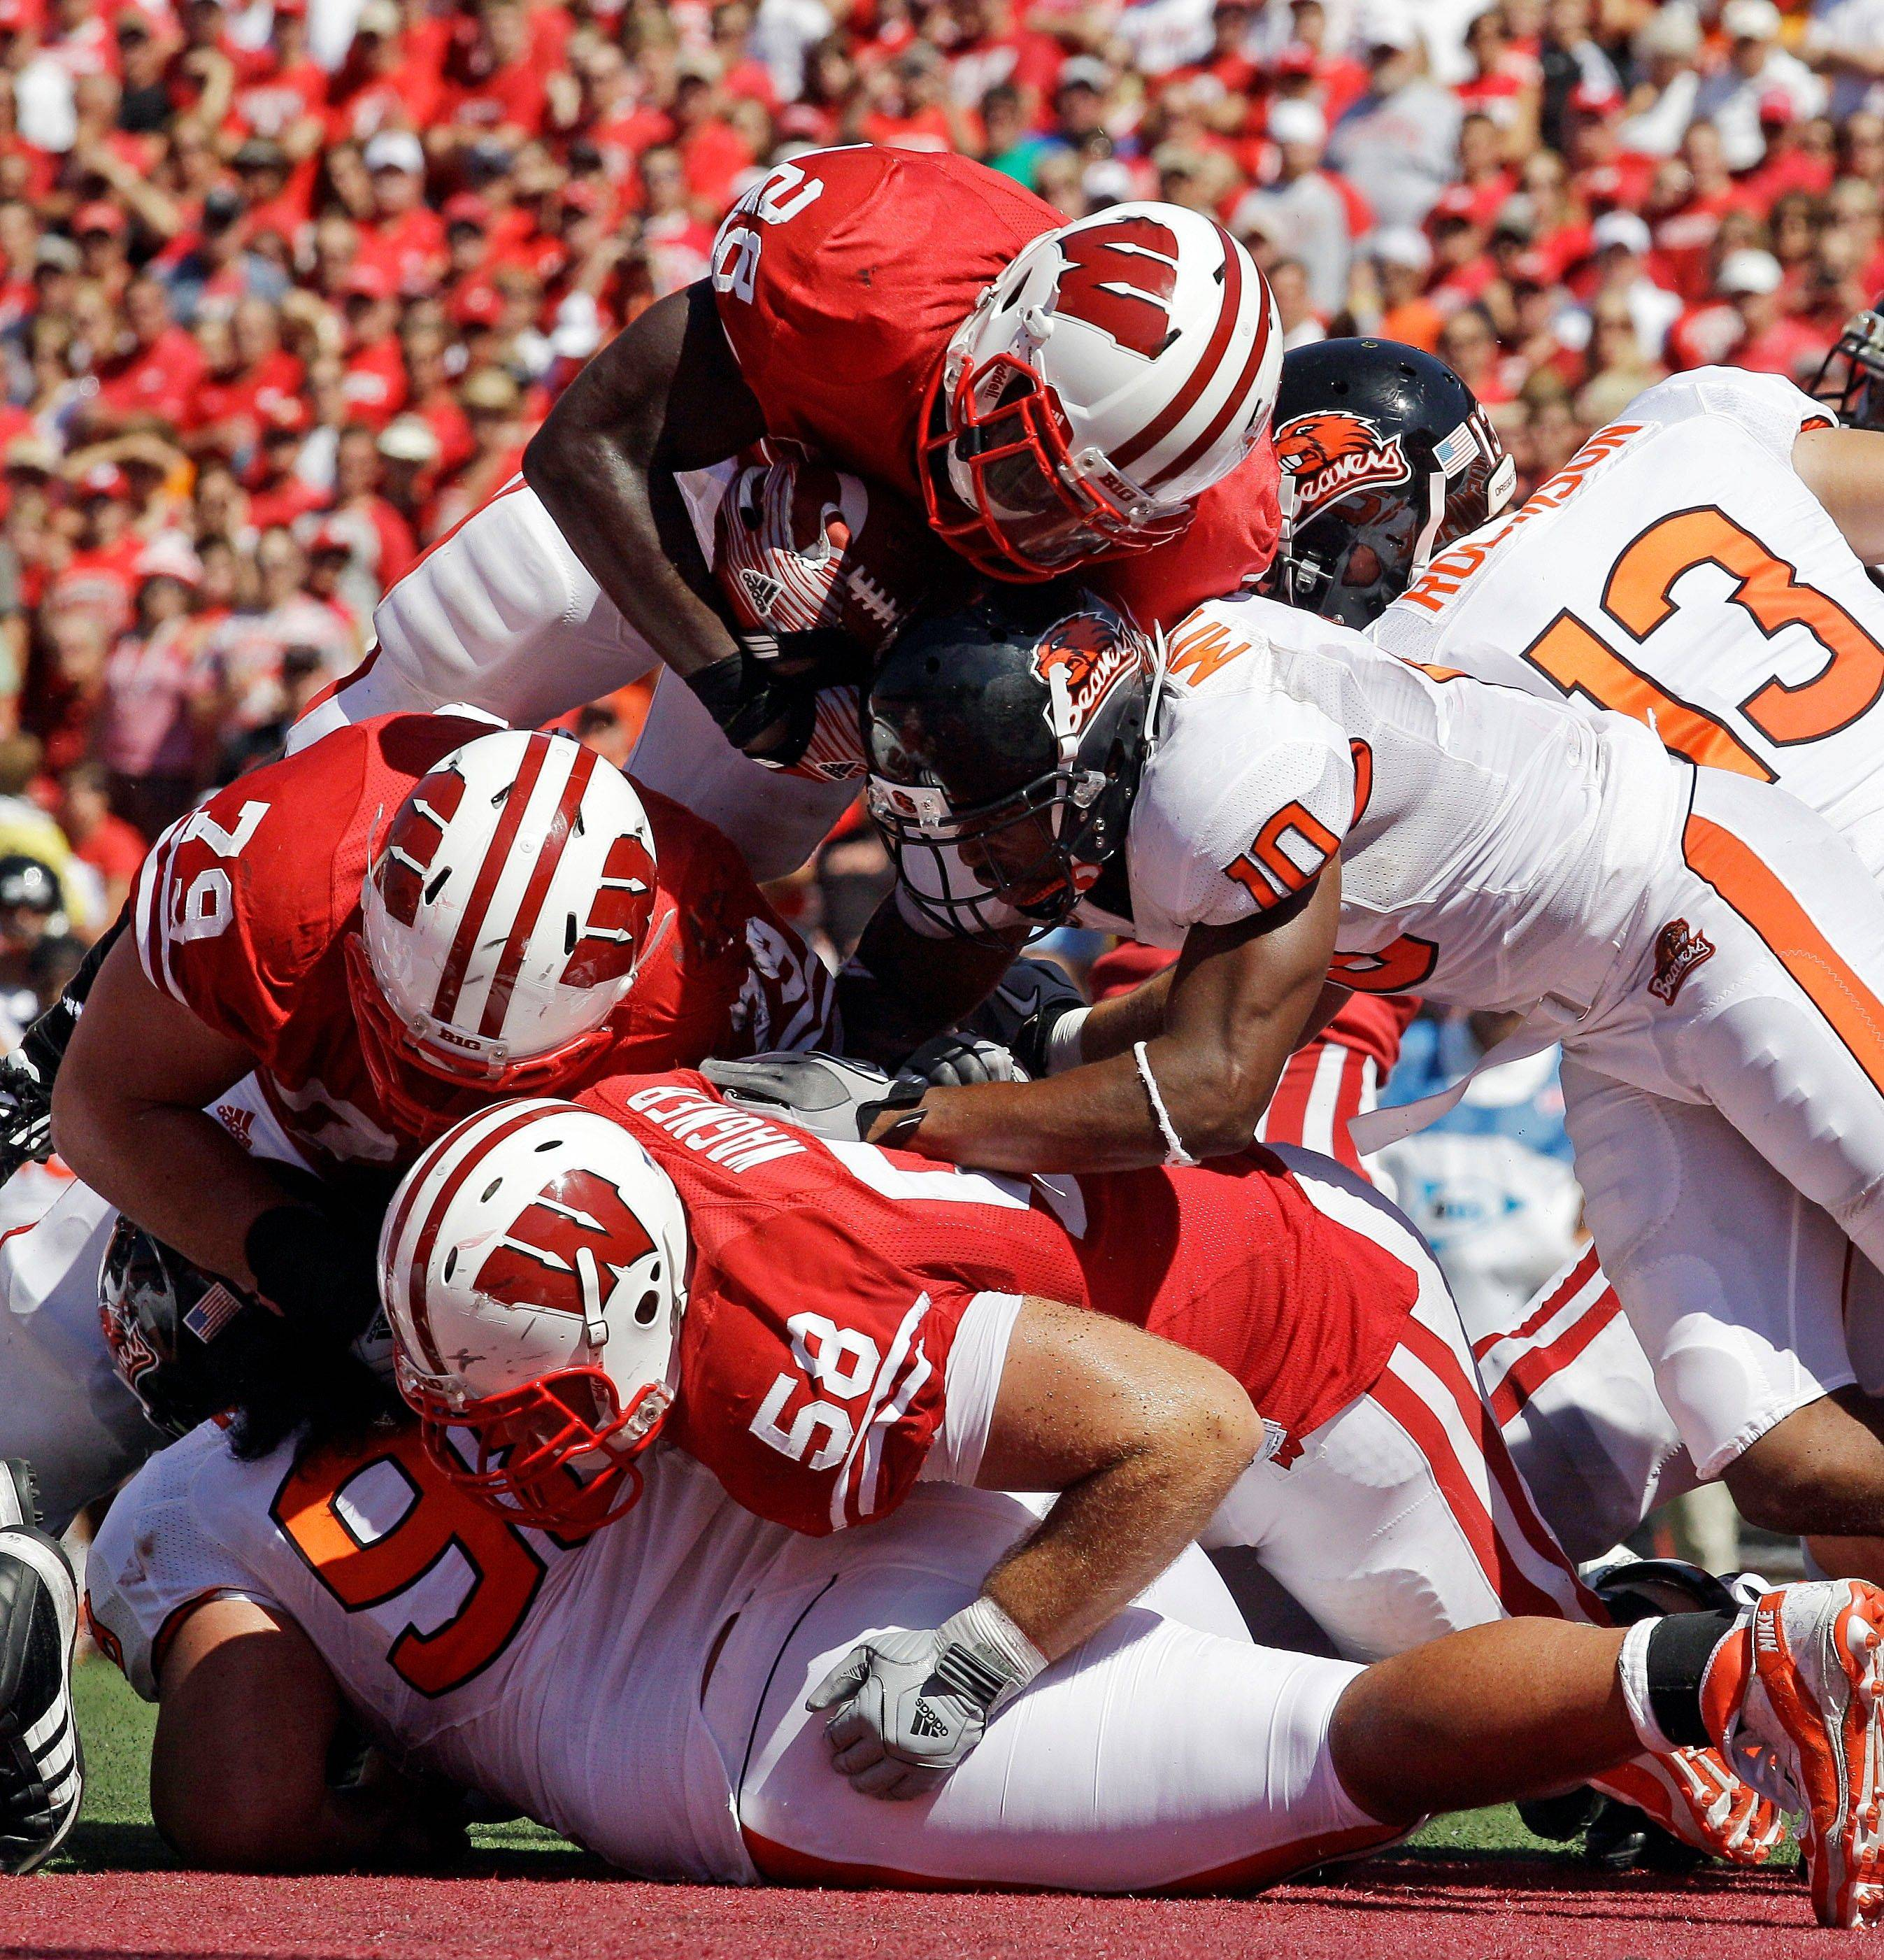 Wisconsin�s Montee Ball (28) leaps over teammates Ryan Groy (79), Ricky Wagner (58) and Oregon State�s Lance Mitchell (10) for a touchdown run during the second half Saturday. Wisconsin beat Oregon State 35-0.